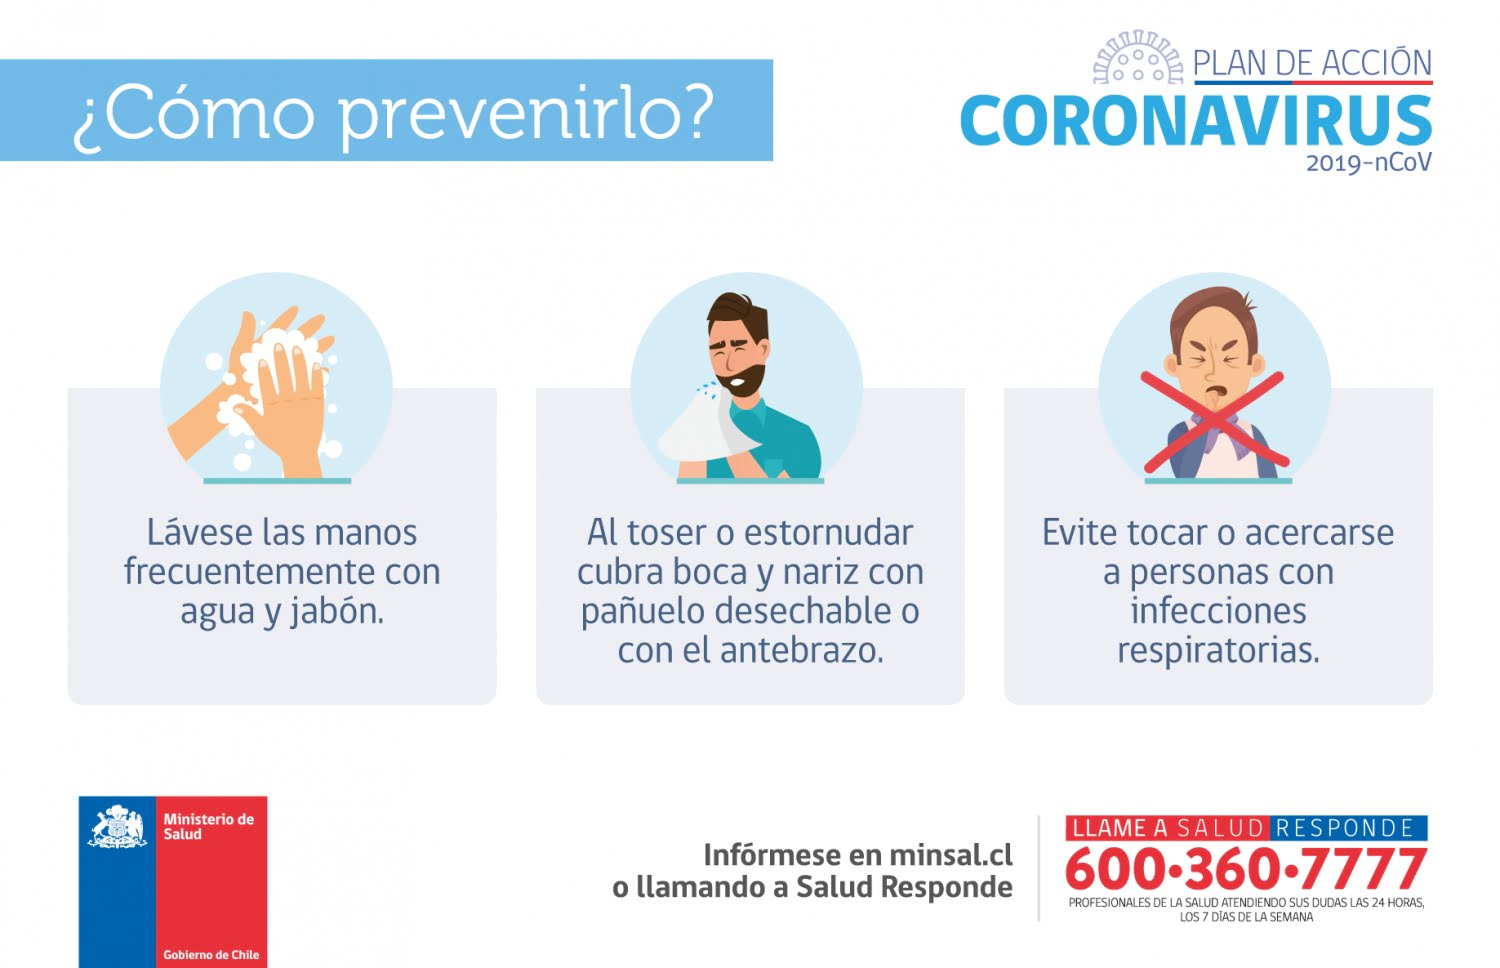 Bolivia surpasses China and the barrier of 85,000 cases of coronavirus